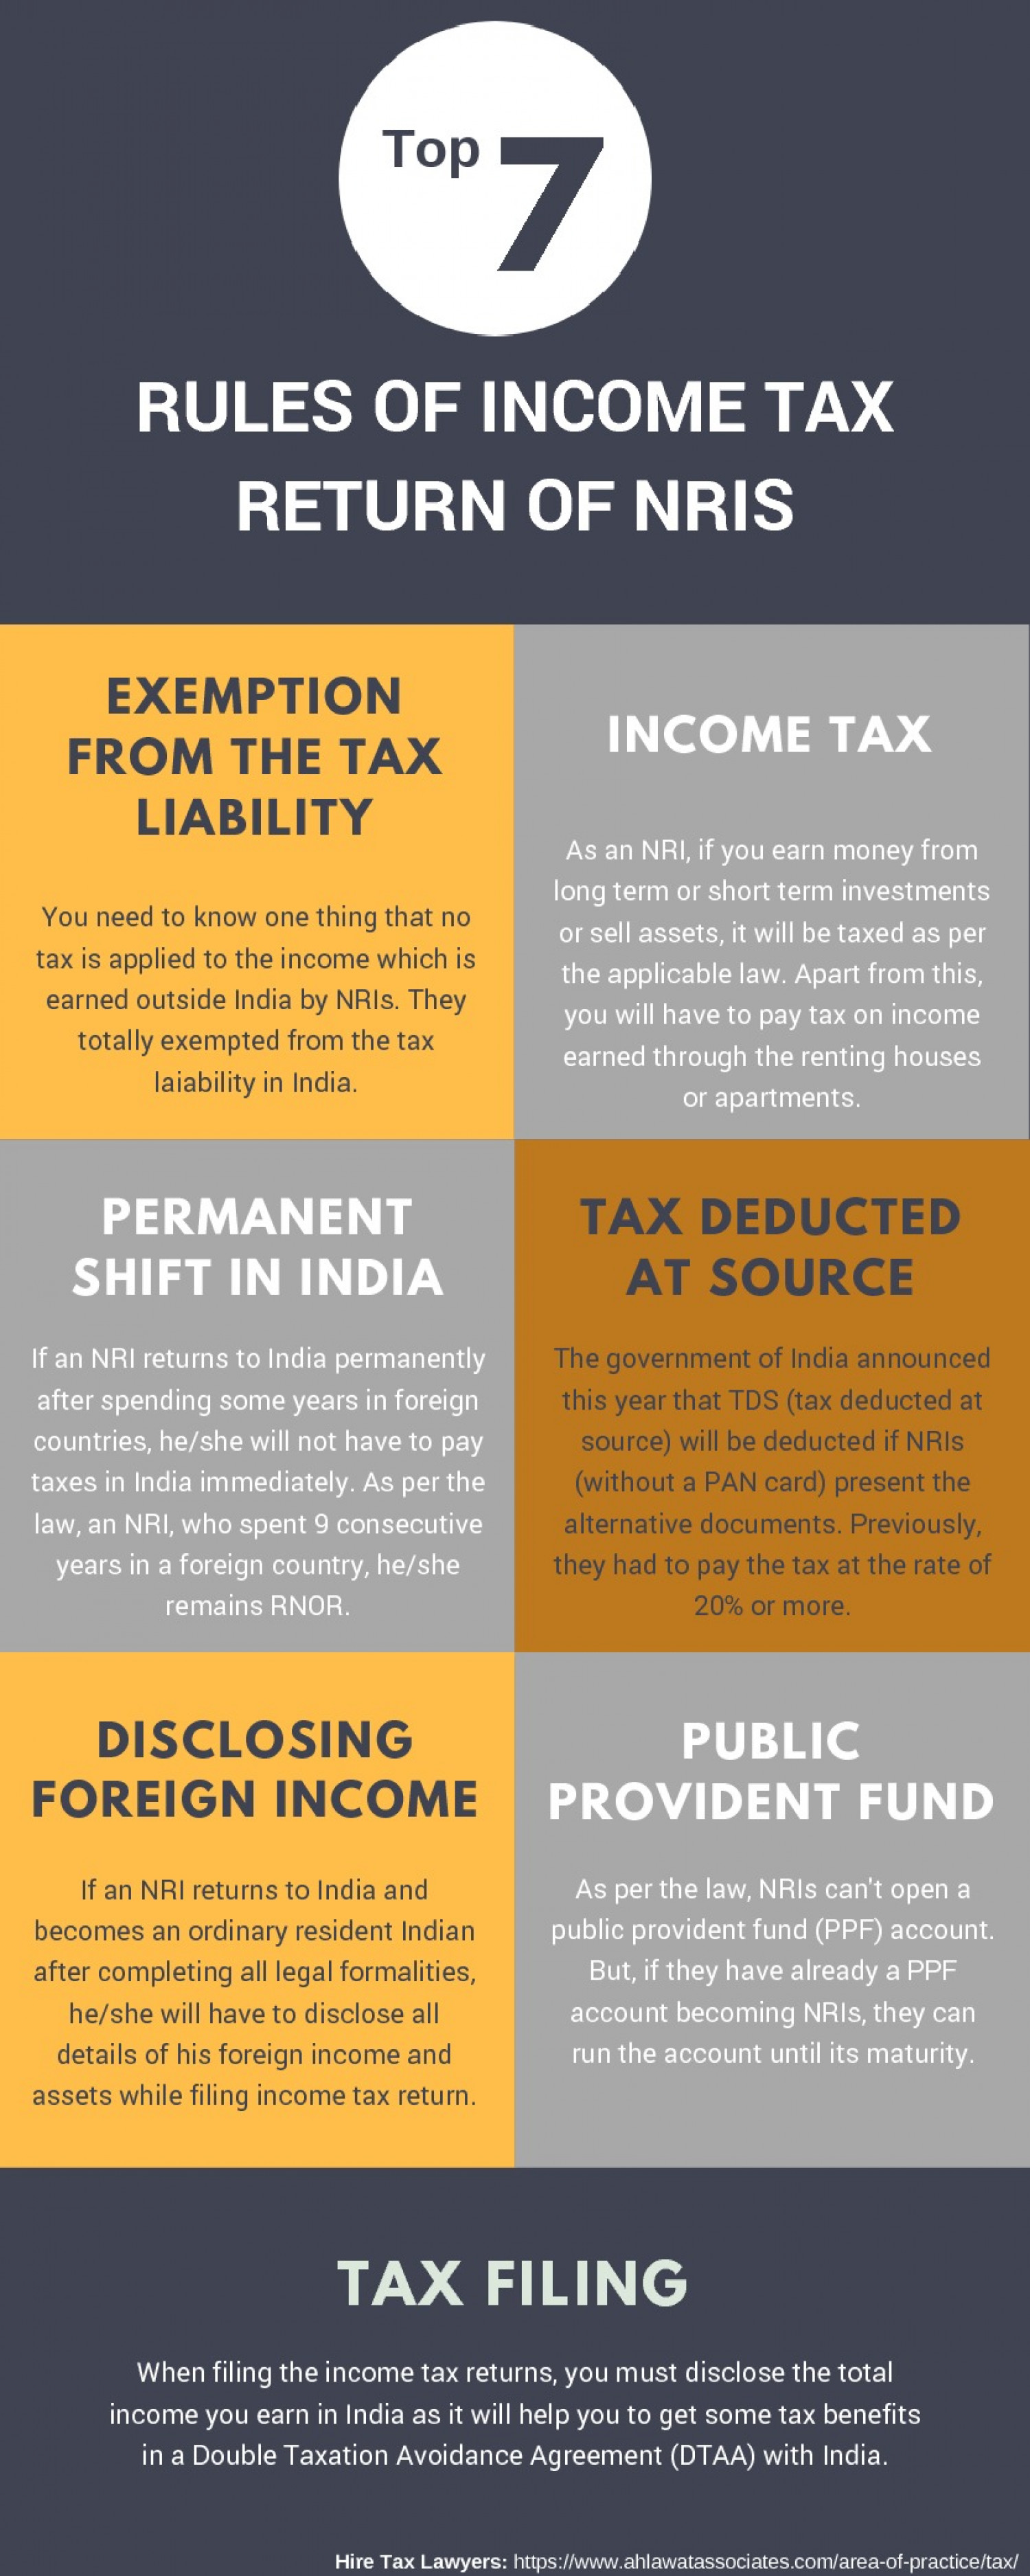 Top Seven Rules of Income Tax Return of NRIs Infographic